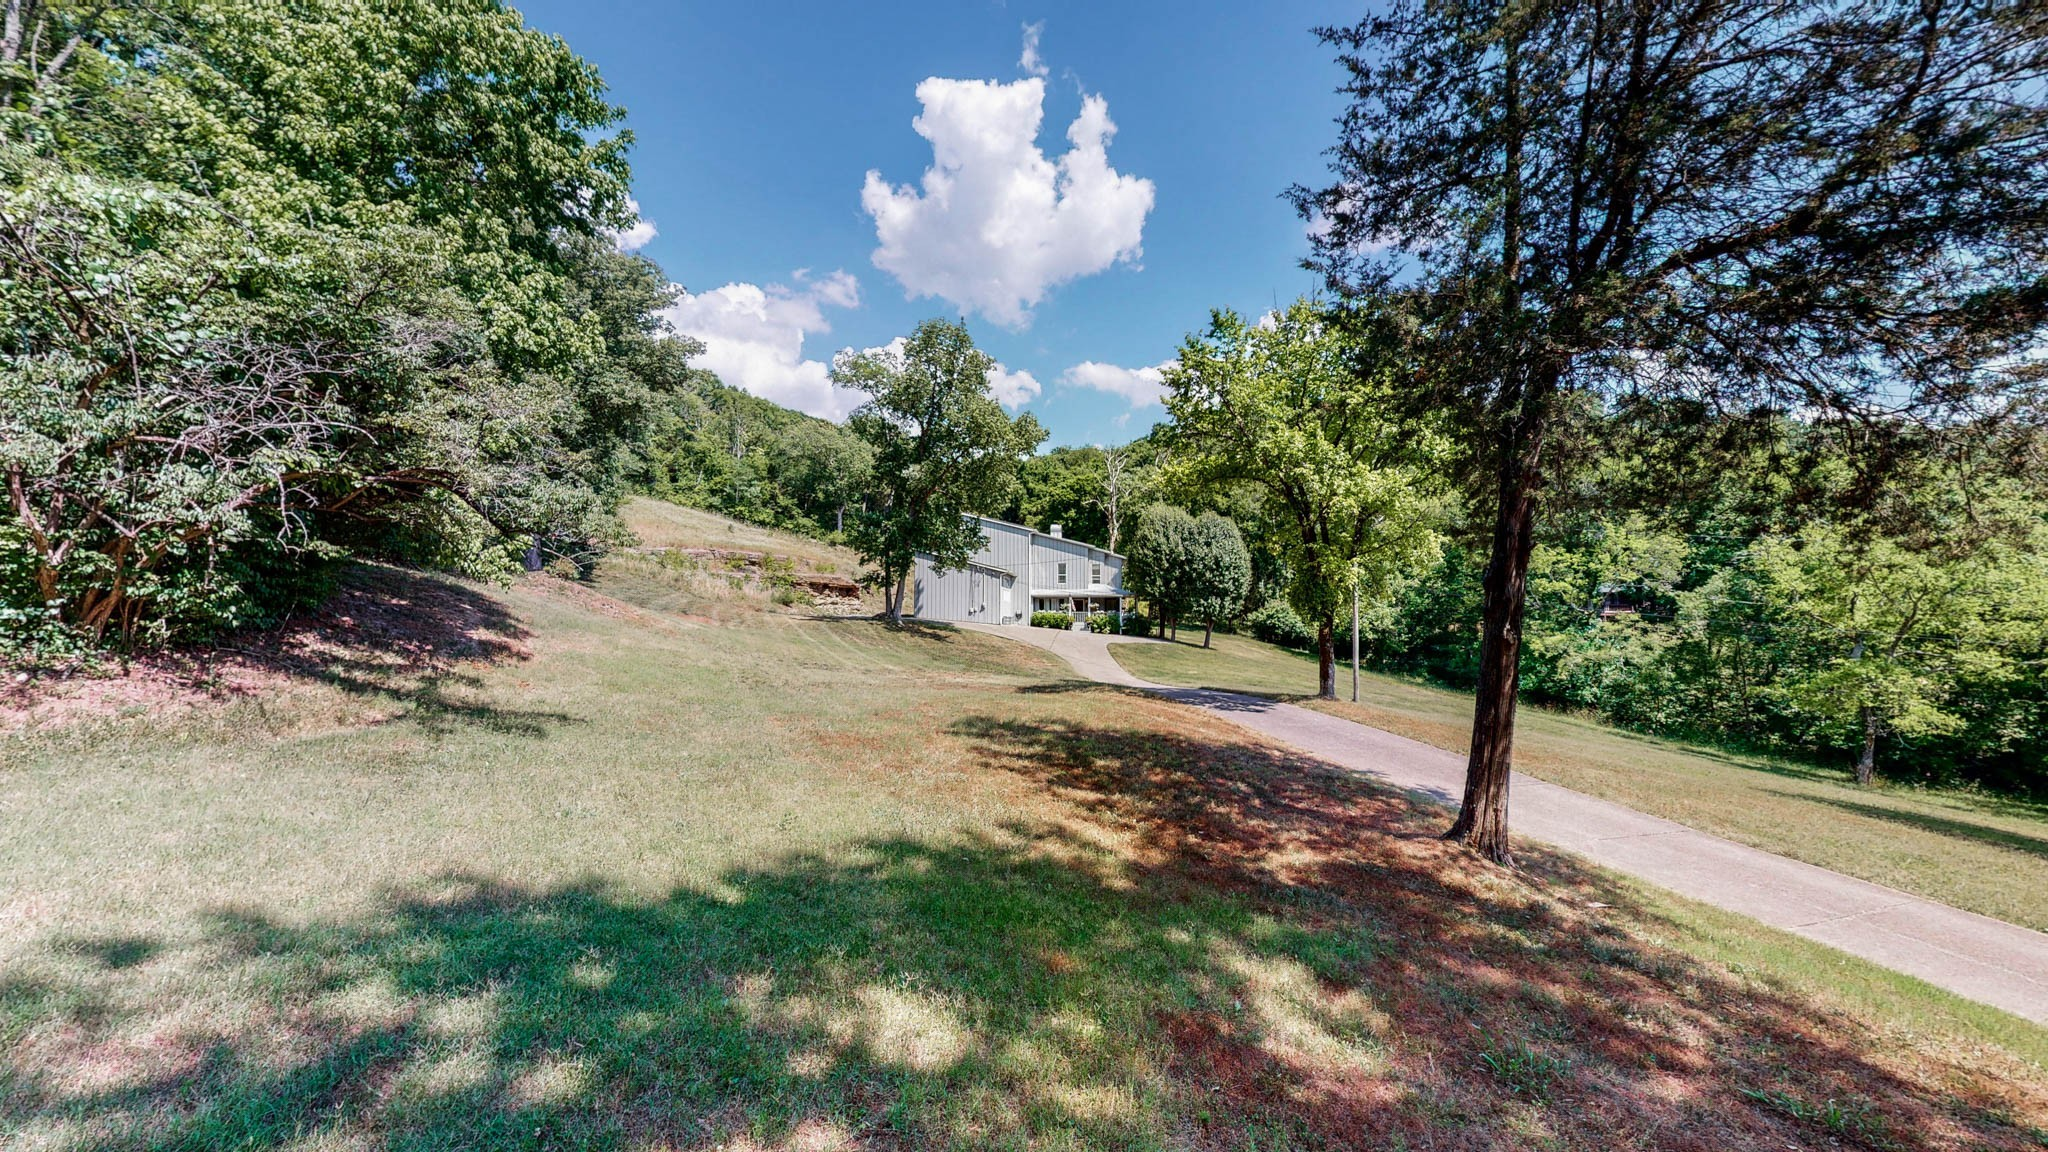 Privacy!  2.2 acres in Brentwood, Feels like the country but in the city, Brentwood schools, zoned areas for guests, children and owners. Kitchen updated in 2018, 2 Baths updated 2020.  Property is full of wildlife and has a variety of fruit trees.  Seller uses music room as 4th bedroom. 2nd master w/large dressing area/closet and full bath up, Seller offering $15K decorating allowance with accepted offer.  Possible 2nd perk site.  Home Warranty included.